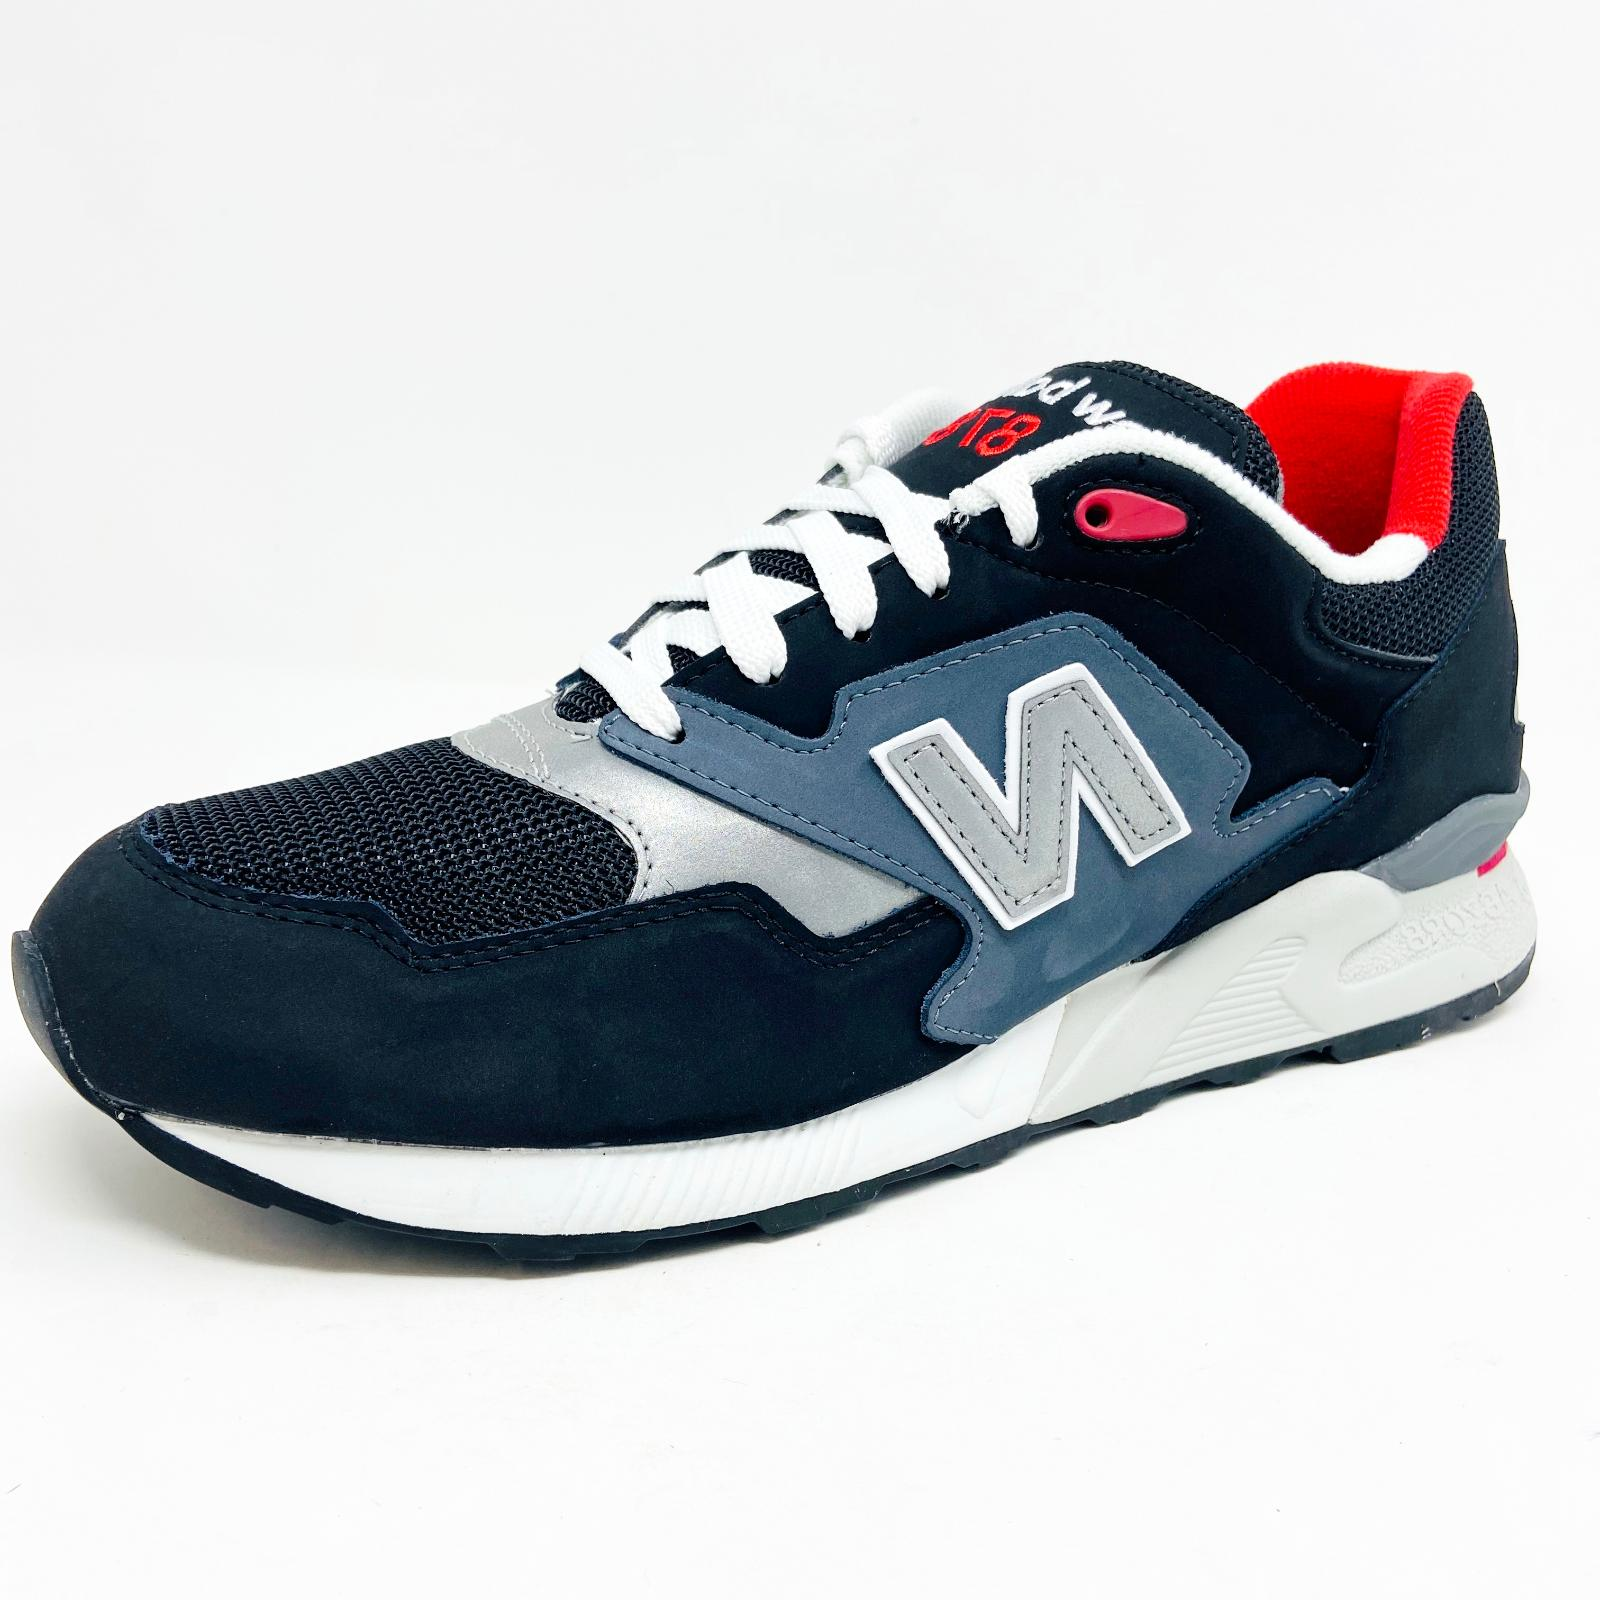 878 90s classics leather black gray red